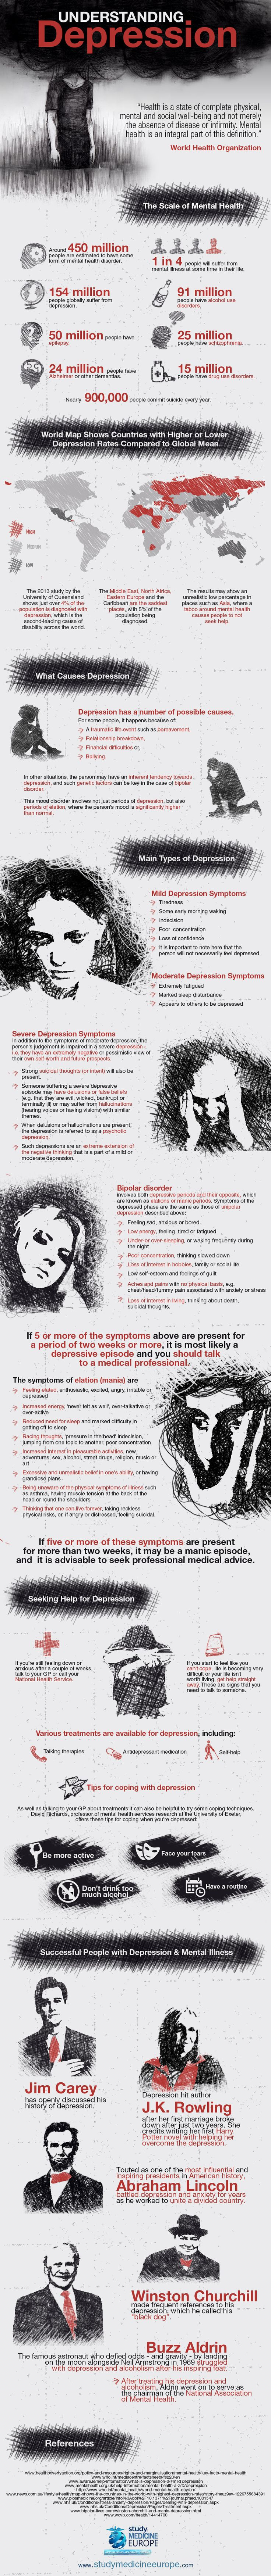 An Infographic to Help You Understand Depression - Whether induced by outside factors or an inherent tendency towards depression or bipolar disorder, seek help if symptoms are present for two or more weeks. (View only) Mental Health Awareness: https://www.pinterest.com/addfreesources/mental-health-awareness/